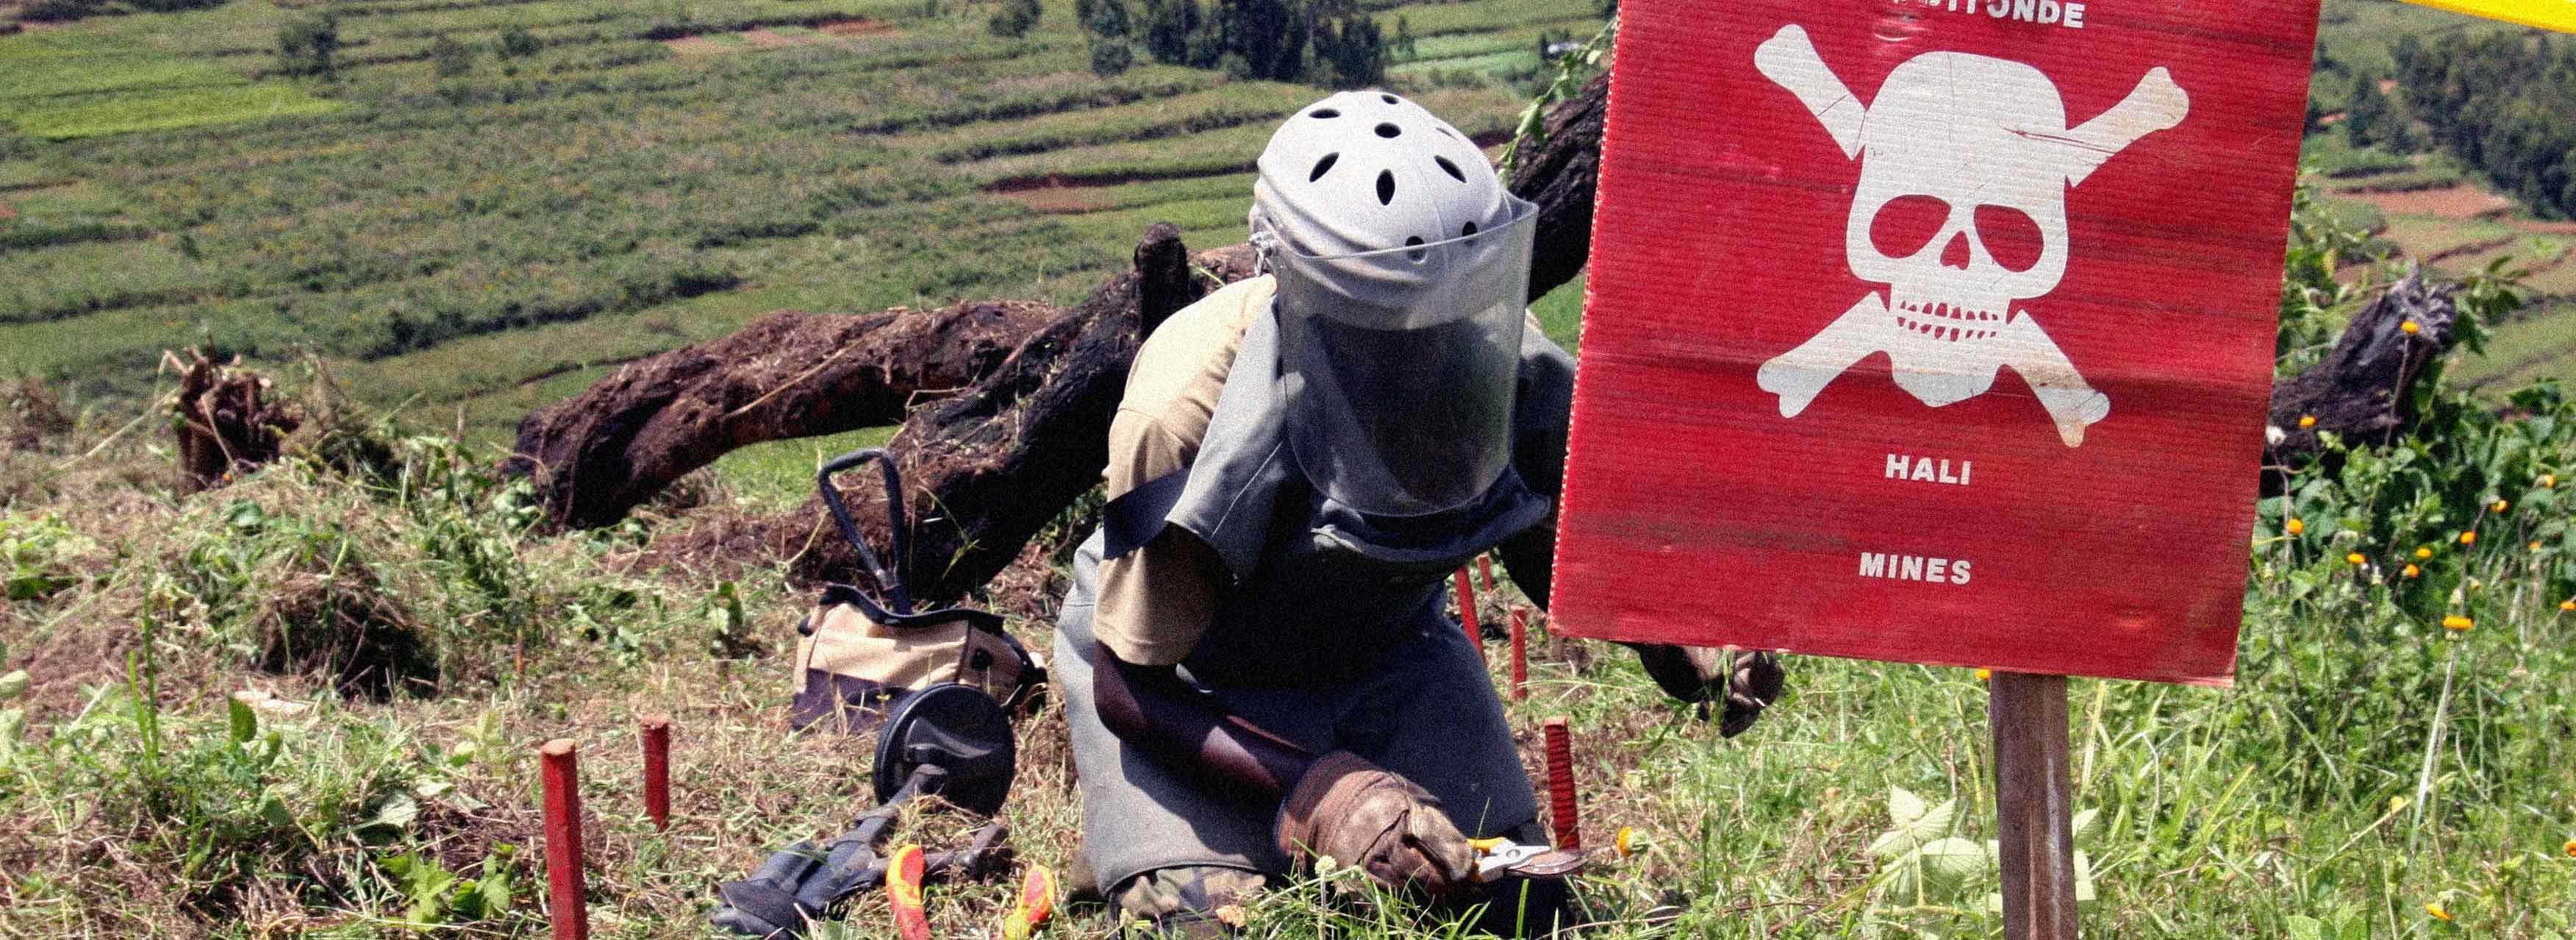 The International Mine Action Standards (IMAS) and Explosive Remnants of War (ERW) Training Specialists